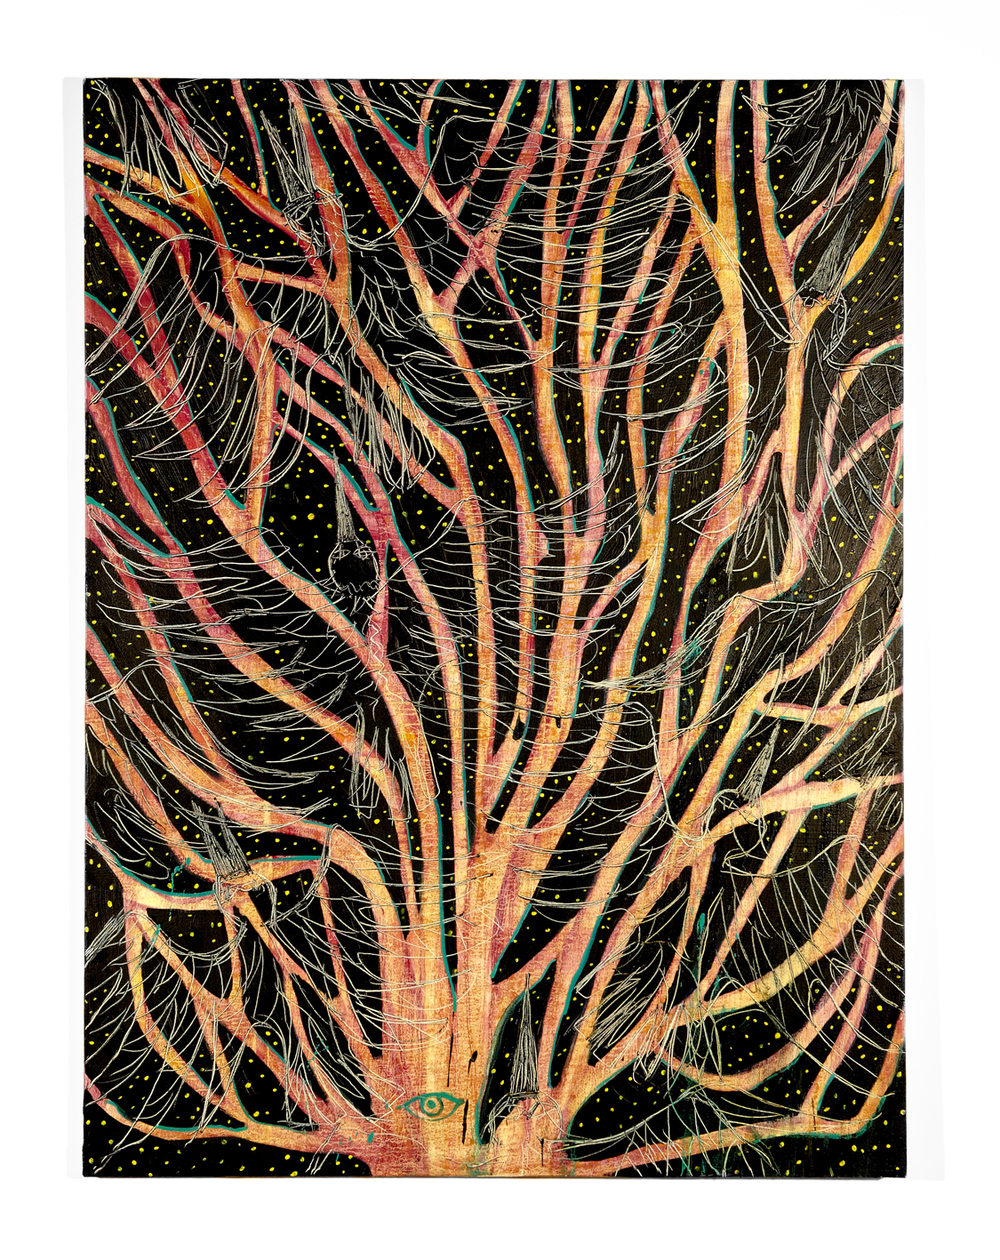 Ryan Schneider. Tree of Phoenix, 2014, oil on canvas, 152 cm x 114 cm